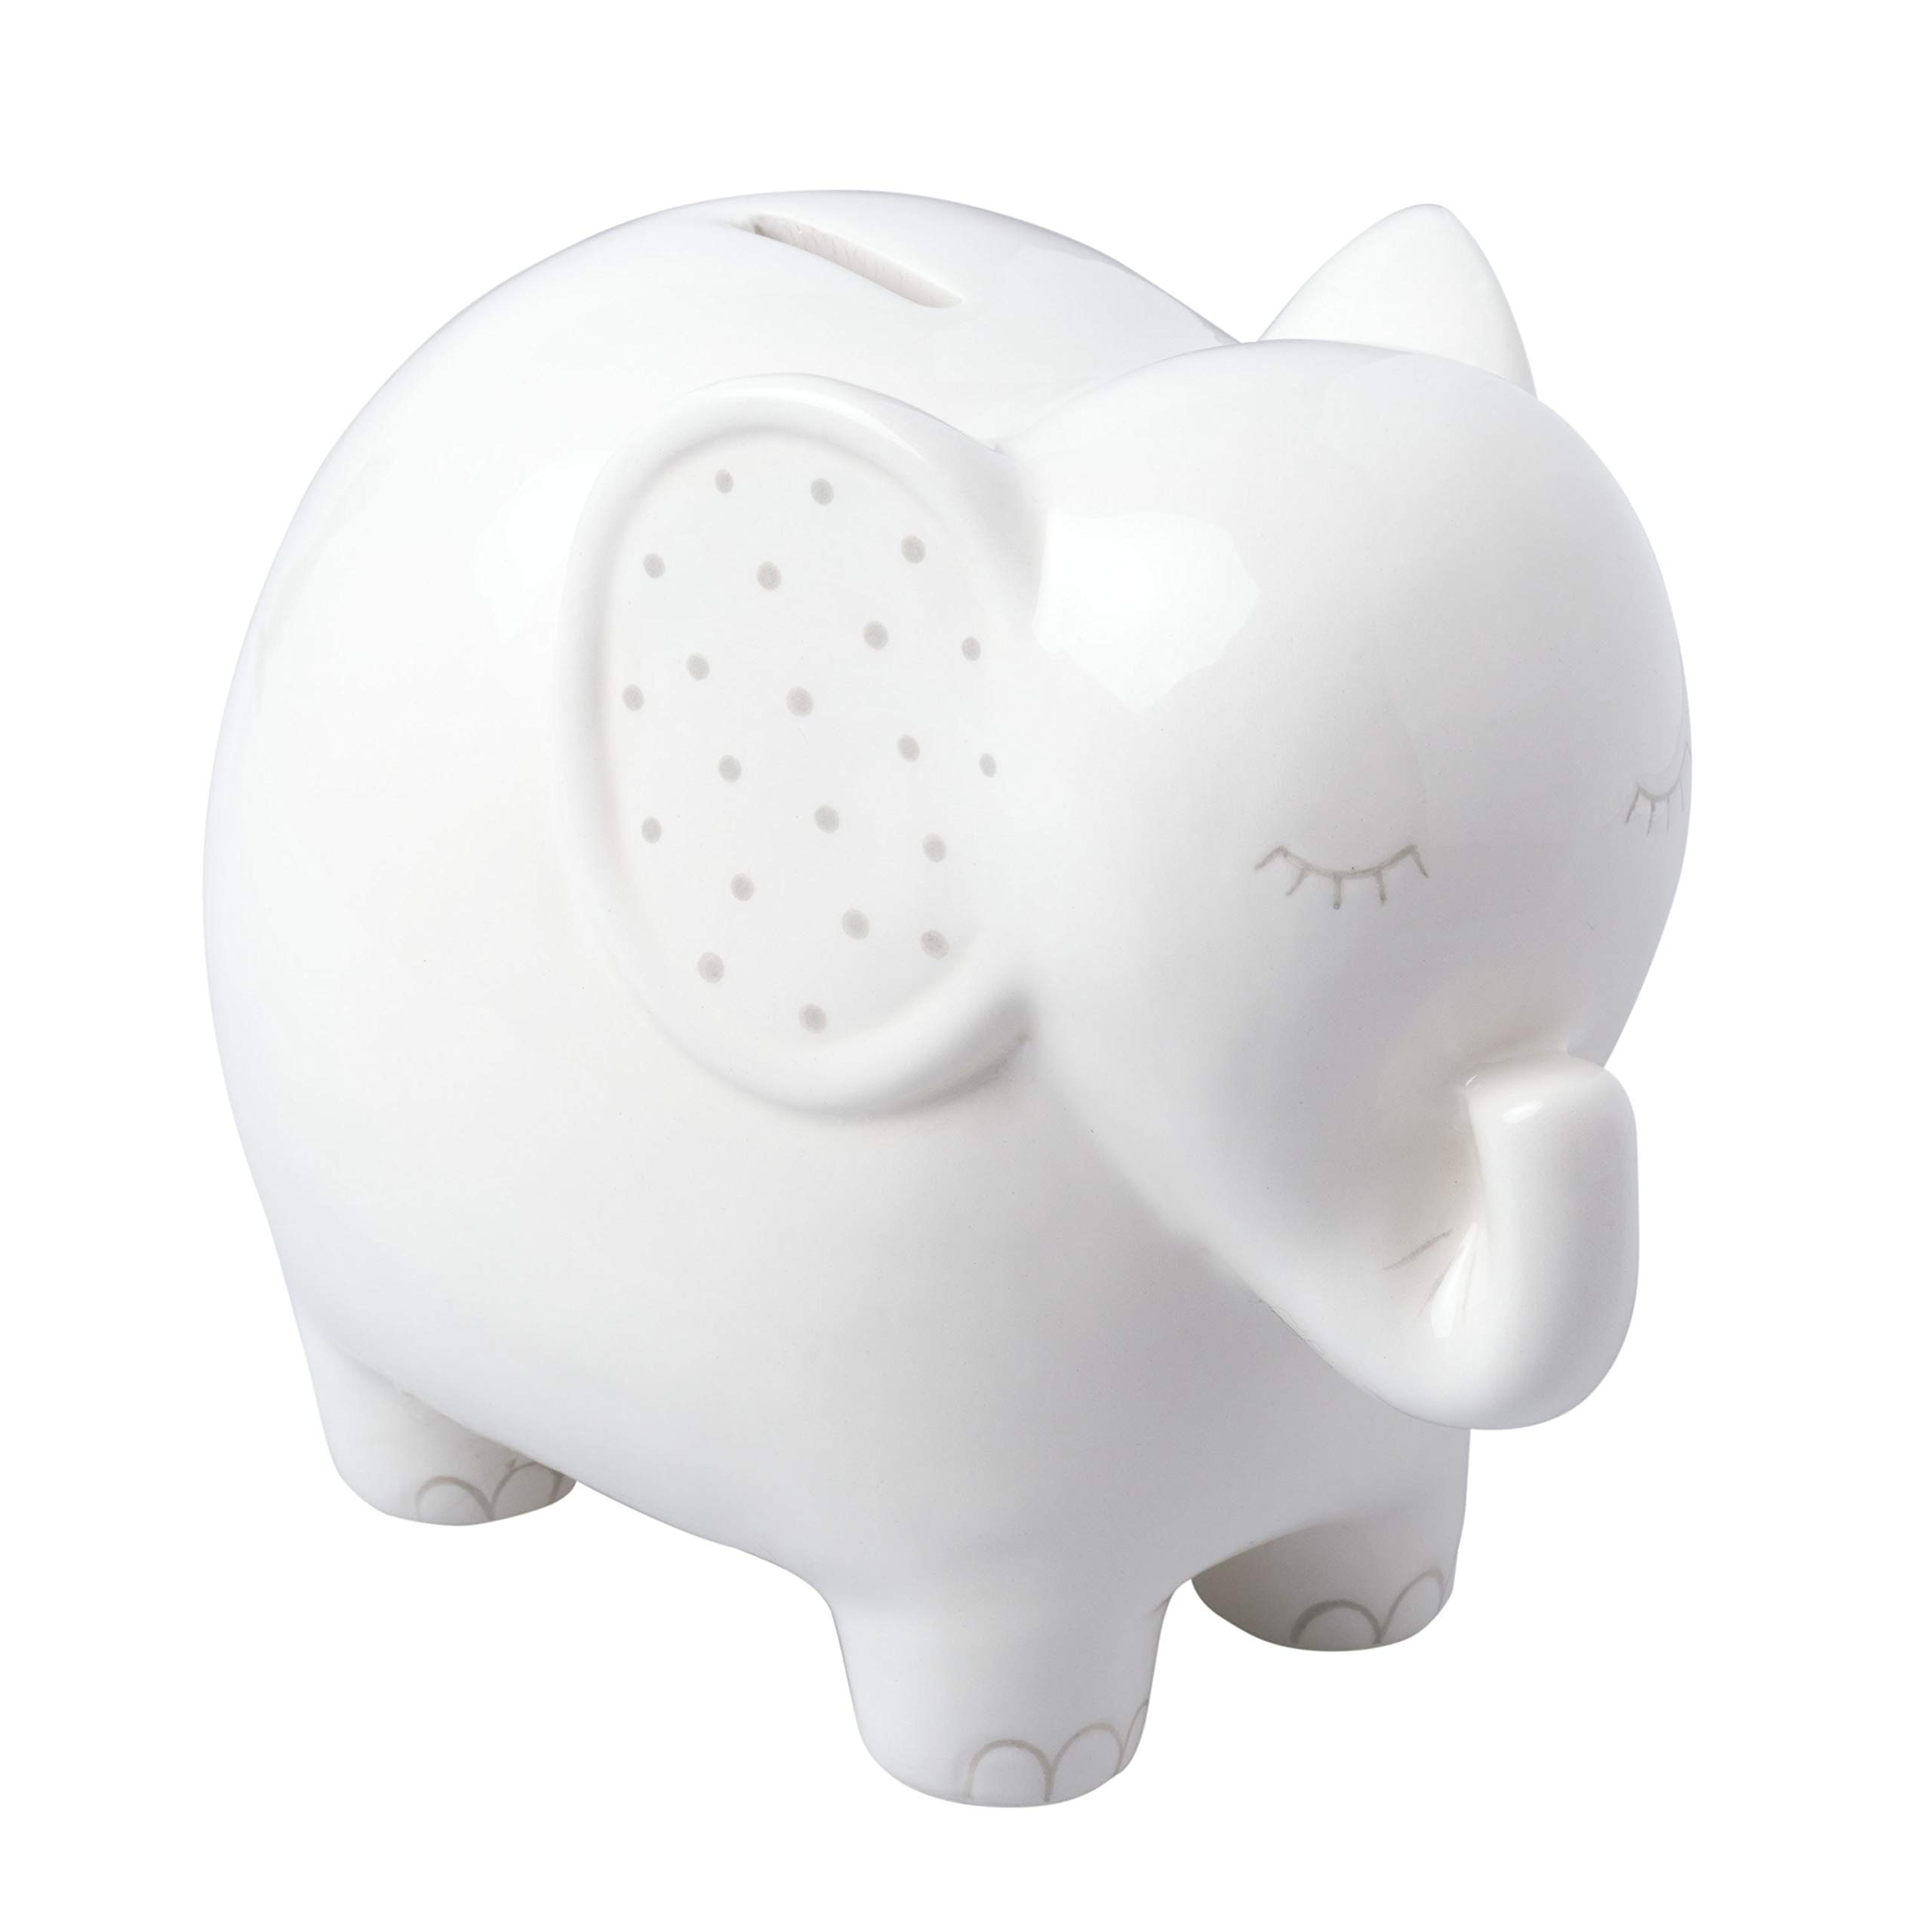 Pearhead Ceramic Elephant Bank, Unique Baby Gift, Nursery Décor, Keepsake, or Savings Toy Bank for Kids, White by Pearhead